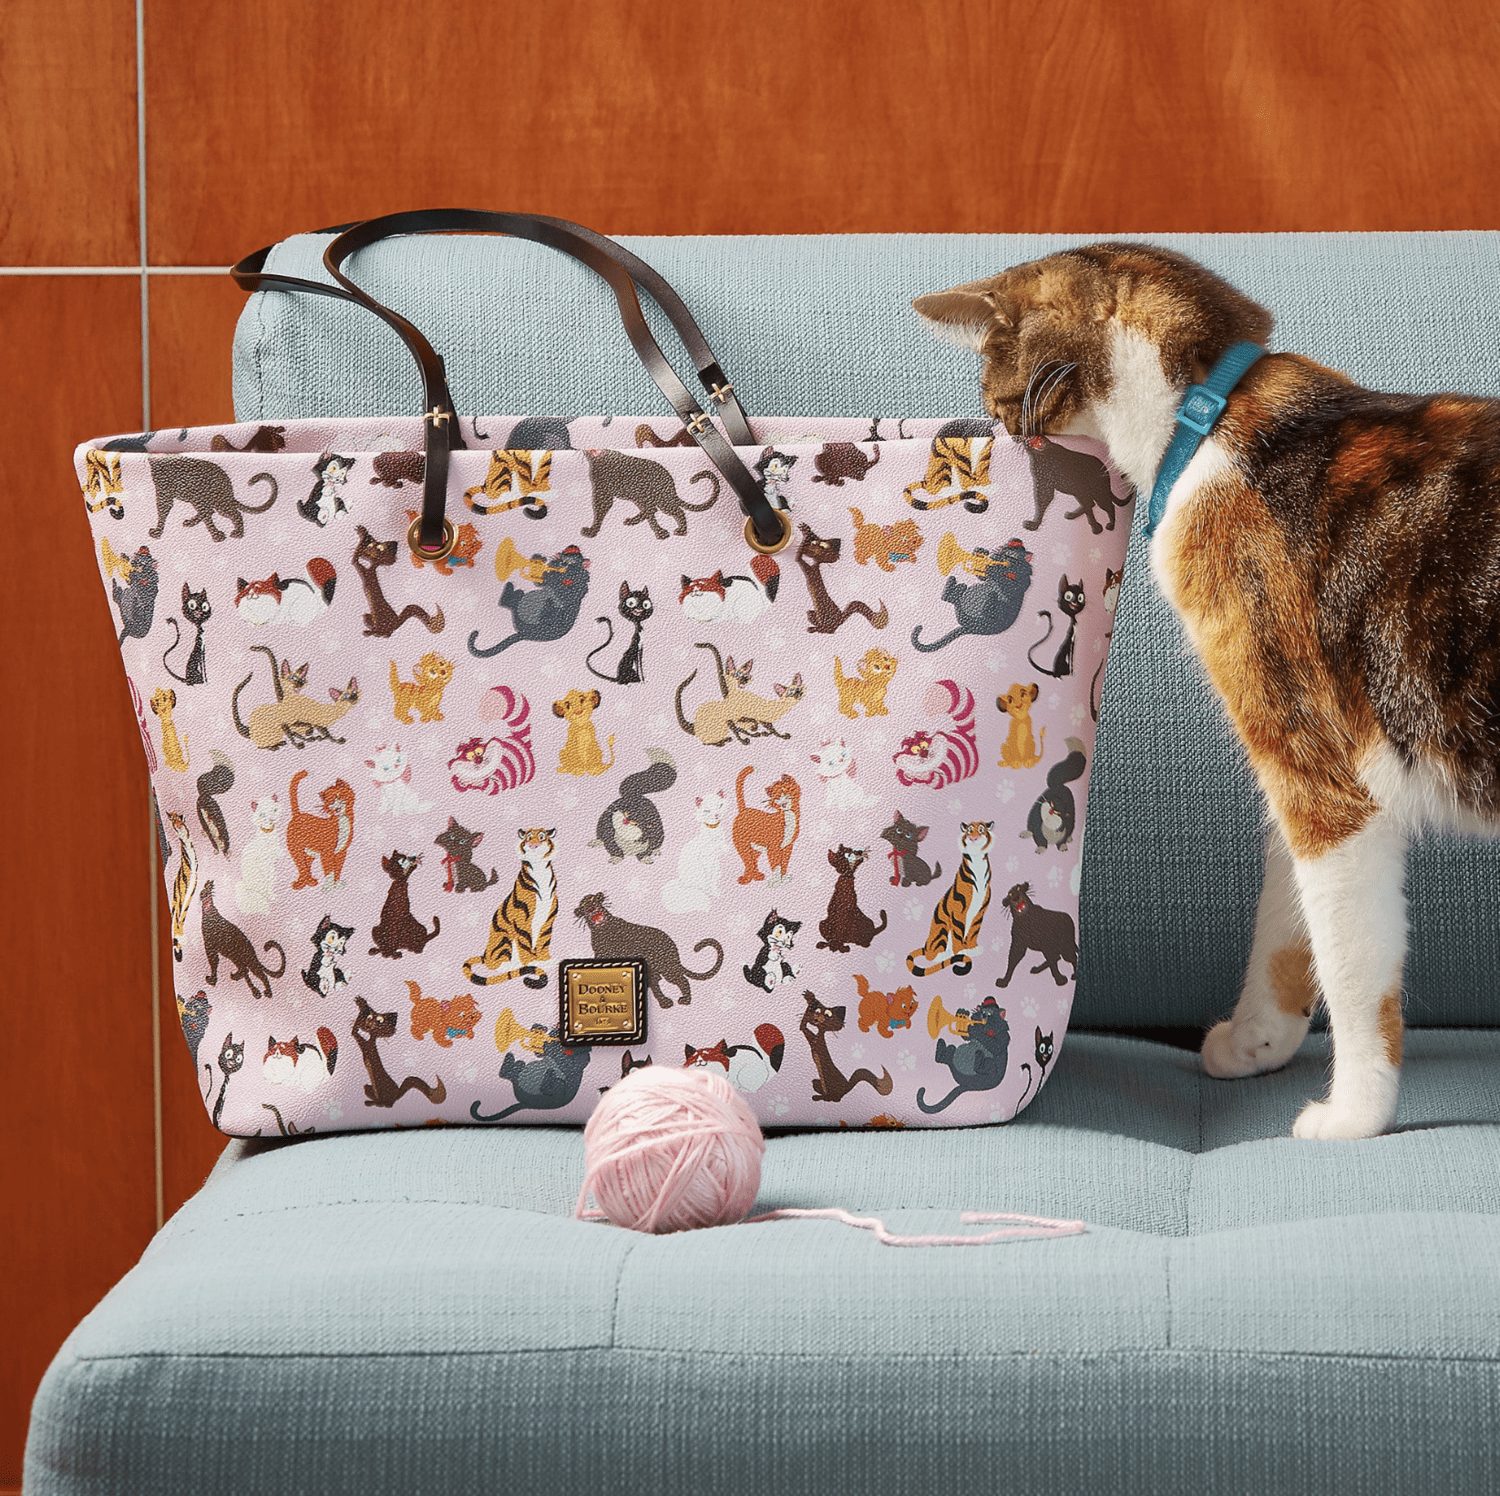 The Purrrfect Disney Cat Gifts 15